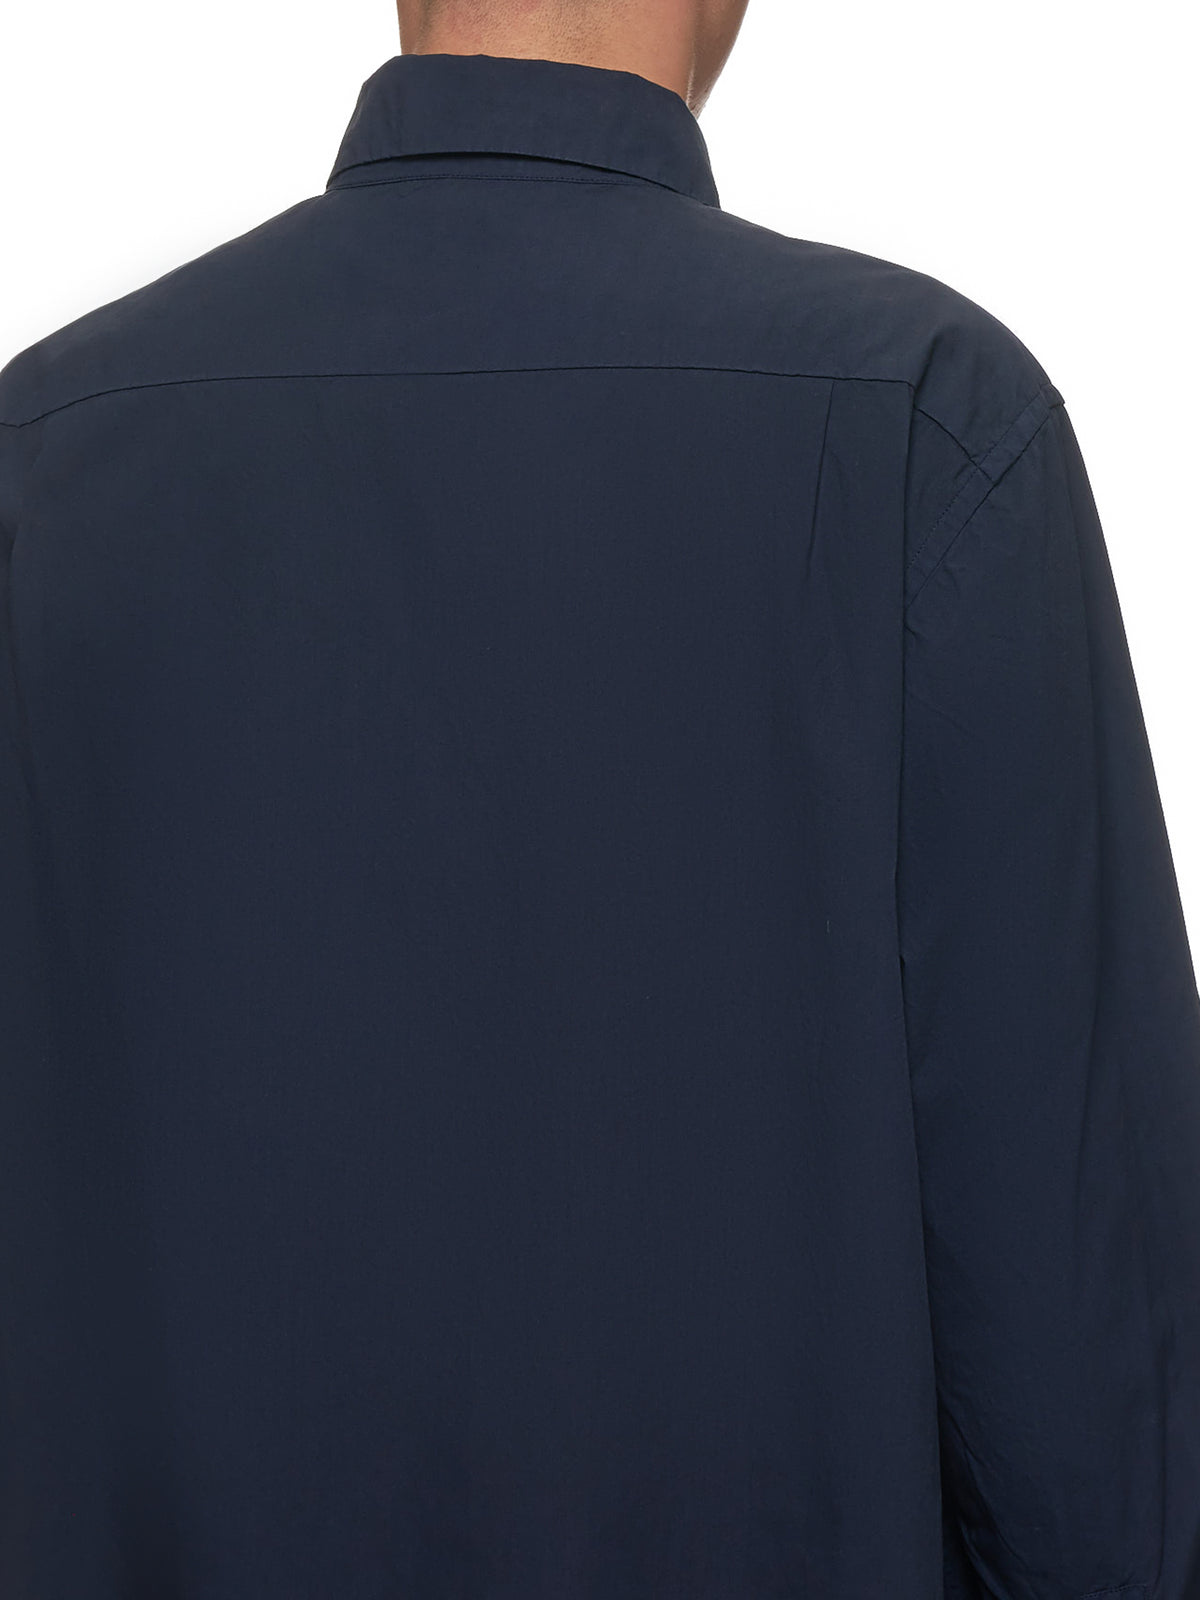 Long-Sleeve Shirt (13HC144-DARK-NAVY)